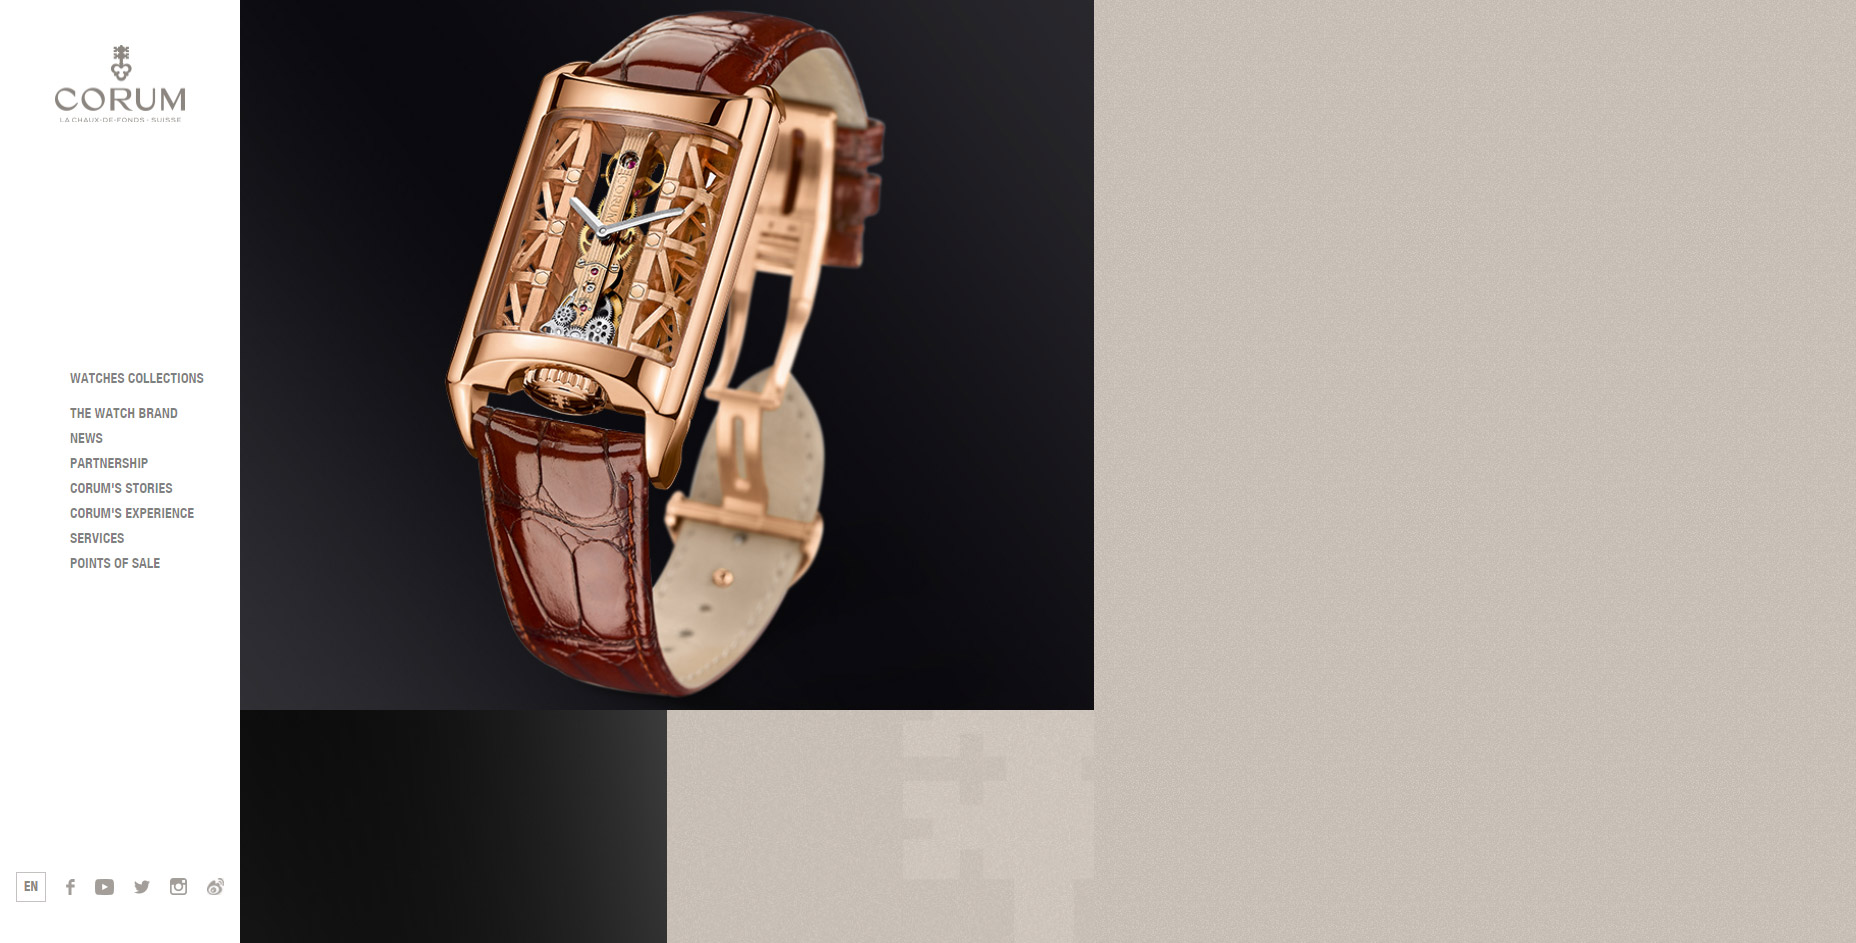 06-corum-website